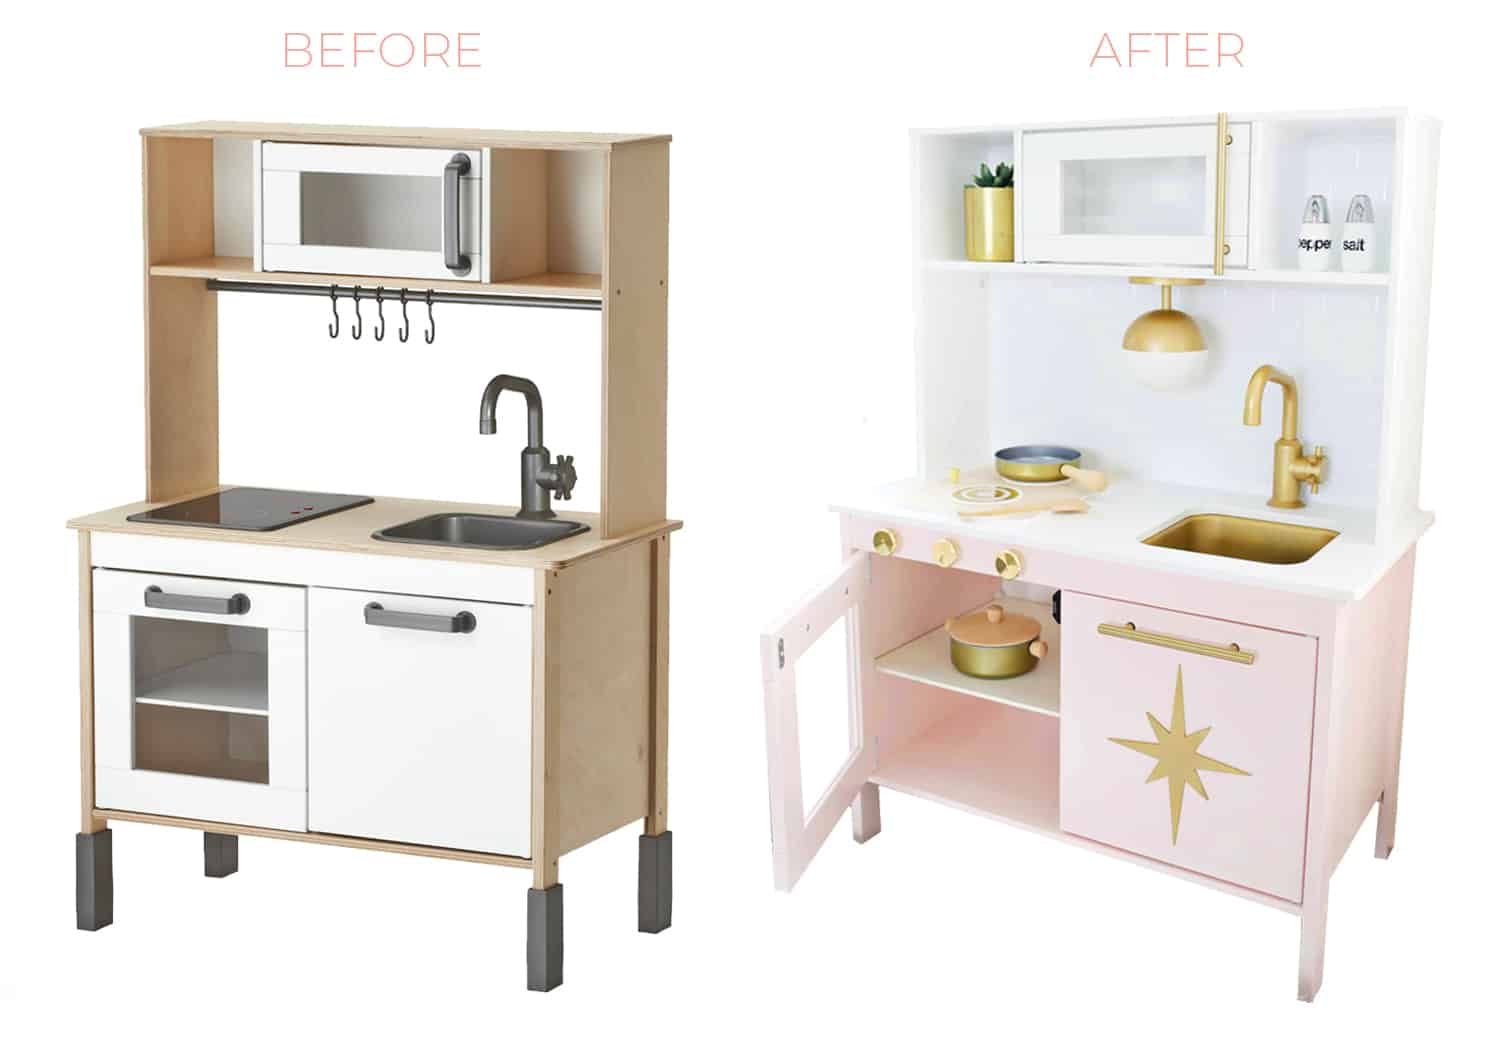 Tutorial for this Ikea kitchen hack on www.abeautifulmess.com!